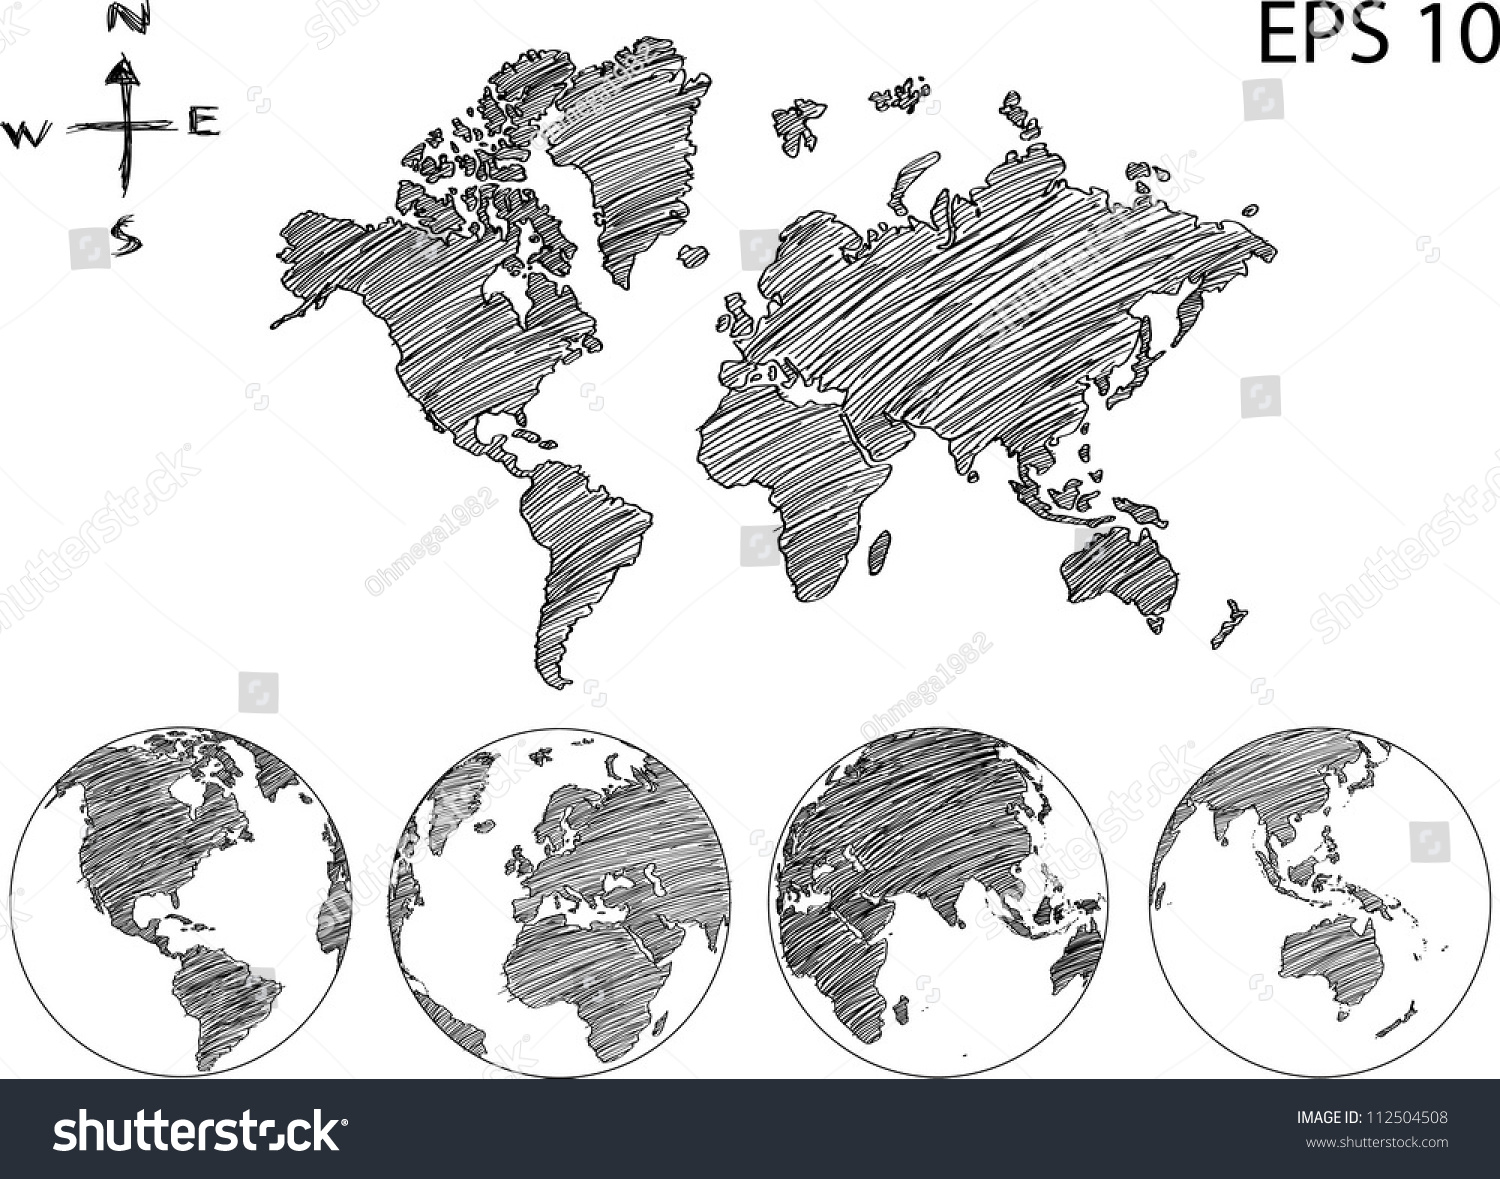 Line Drawing World Map : Earth globe world map detail vector stock